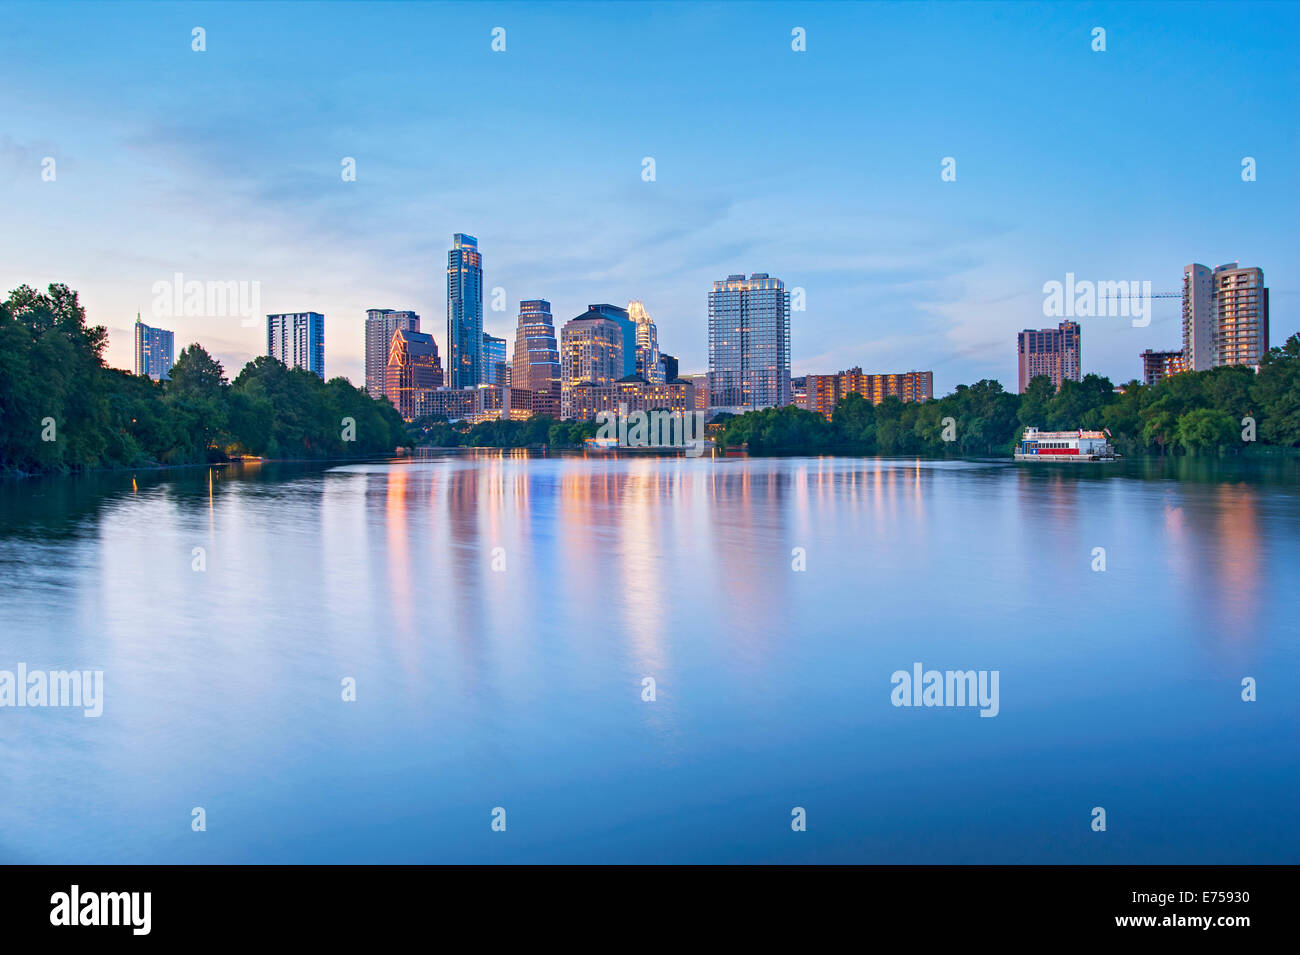 Skyline of Austin, Texas - Stock Image